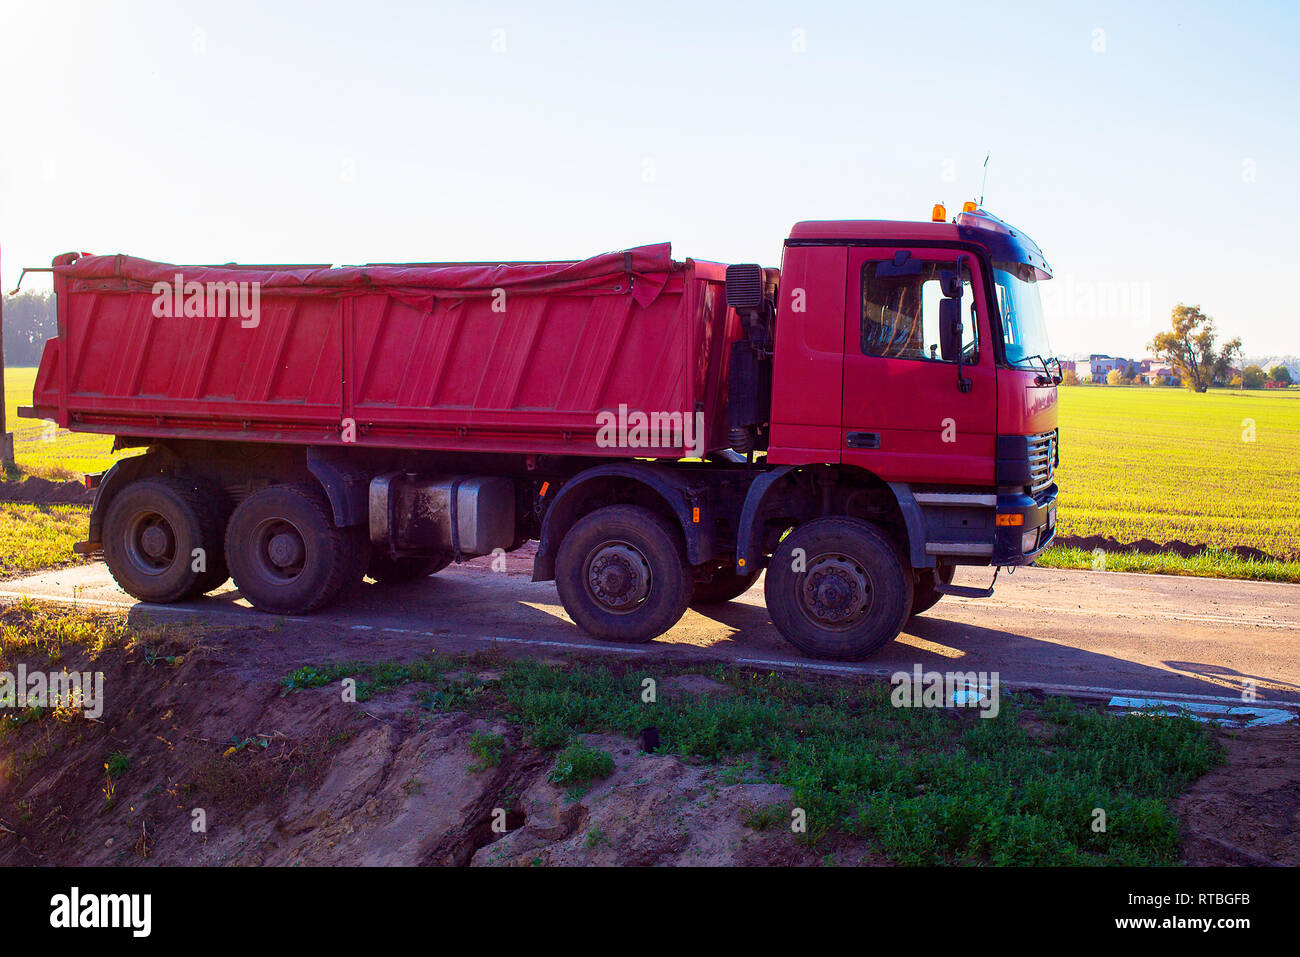 A red dump truck for sand delivery is parked with field and sky in the background - Stock Image